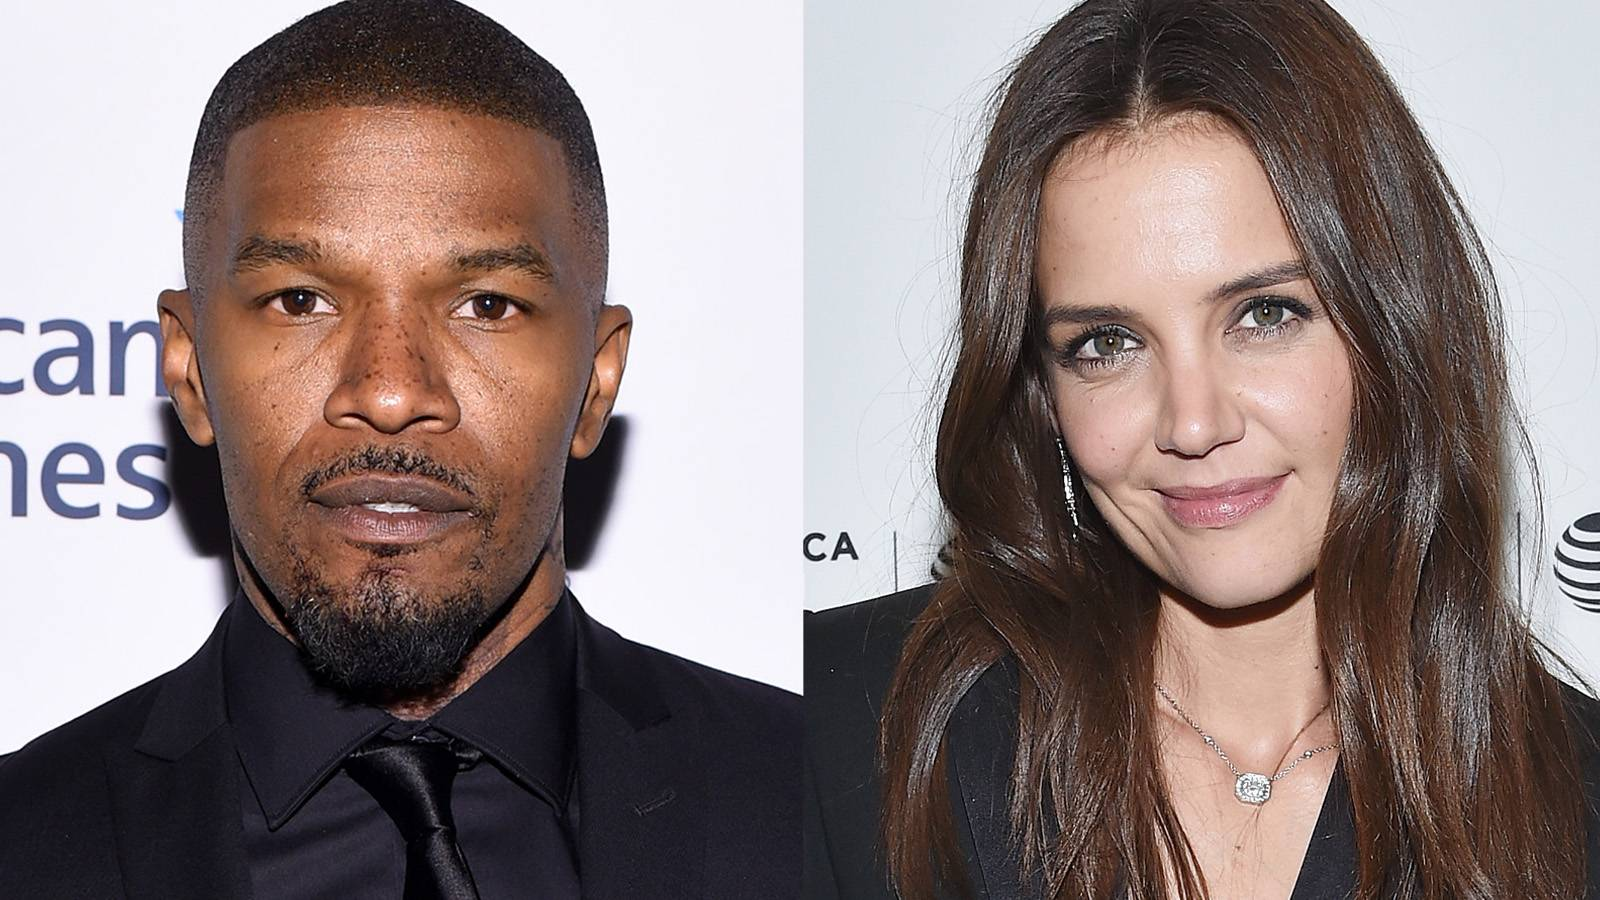 Are These Two Expecting a Baby? - Rumors are flying all over the place that Katie Holmes and Jamie Foxx may be four months pregnant. However, the couple remains tight-lipped. Are they even Facebook official yet? (Photos from left: Dimitrios Kambouris/Getty Images for EIF, Mike Coppola/Getty Images for 2016 Tribeca Film Festival)